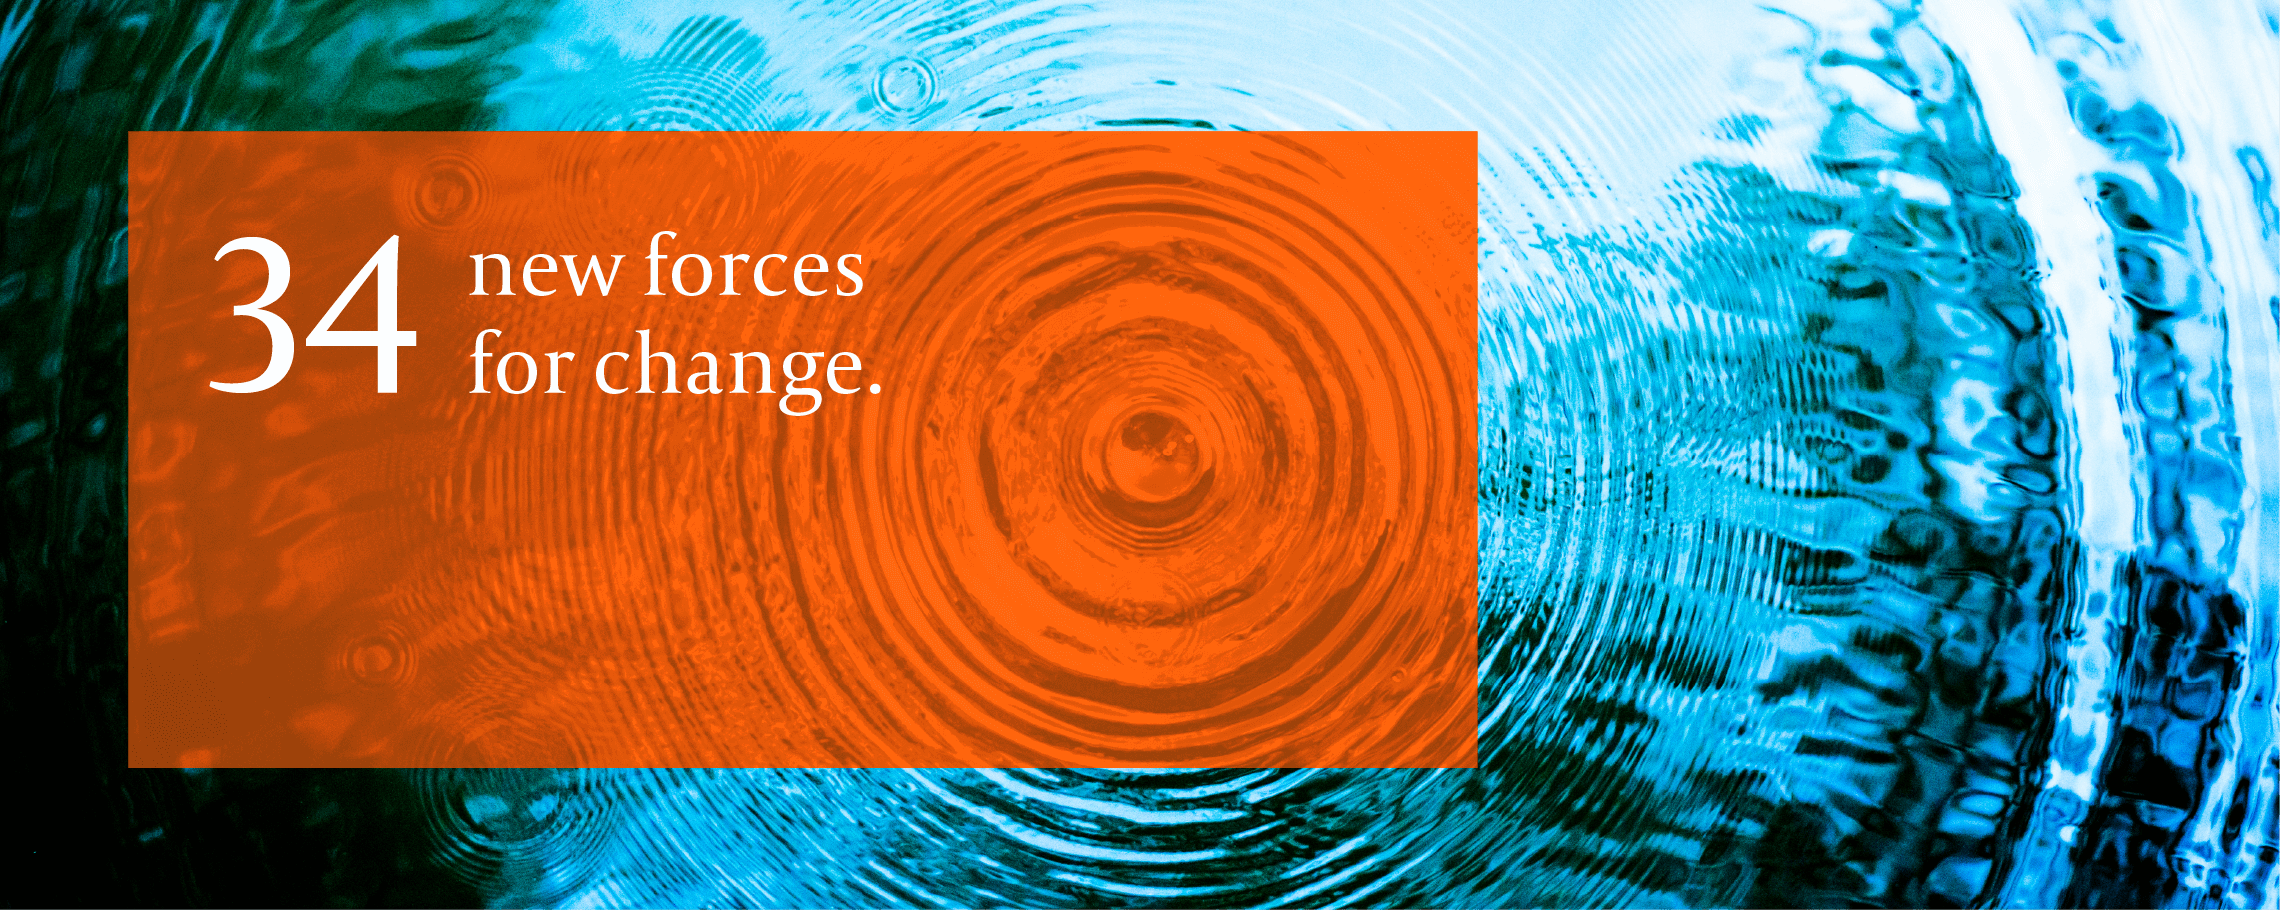 """34 new forces for change"" overlaying a rippled water background"